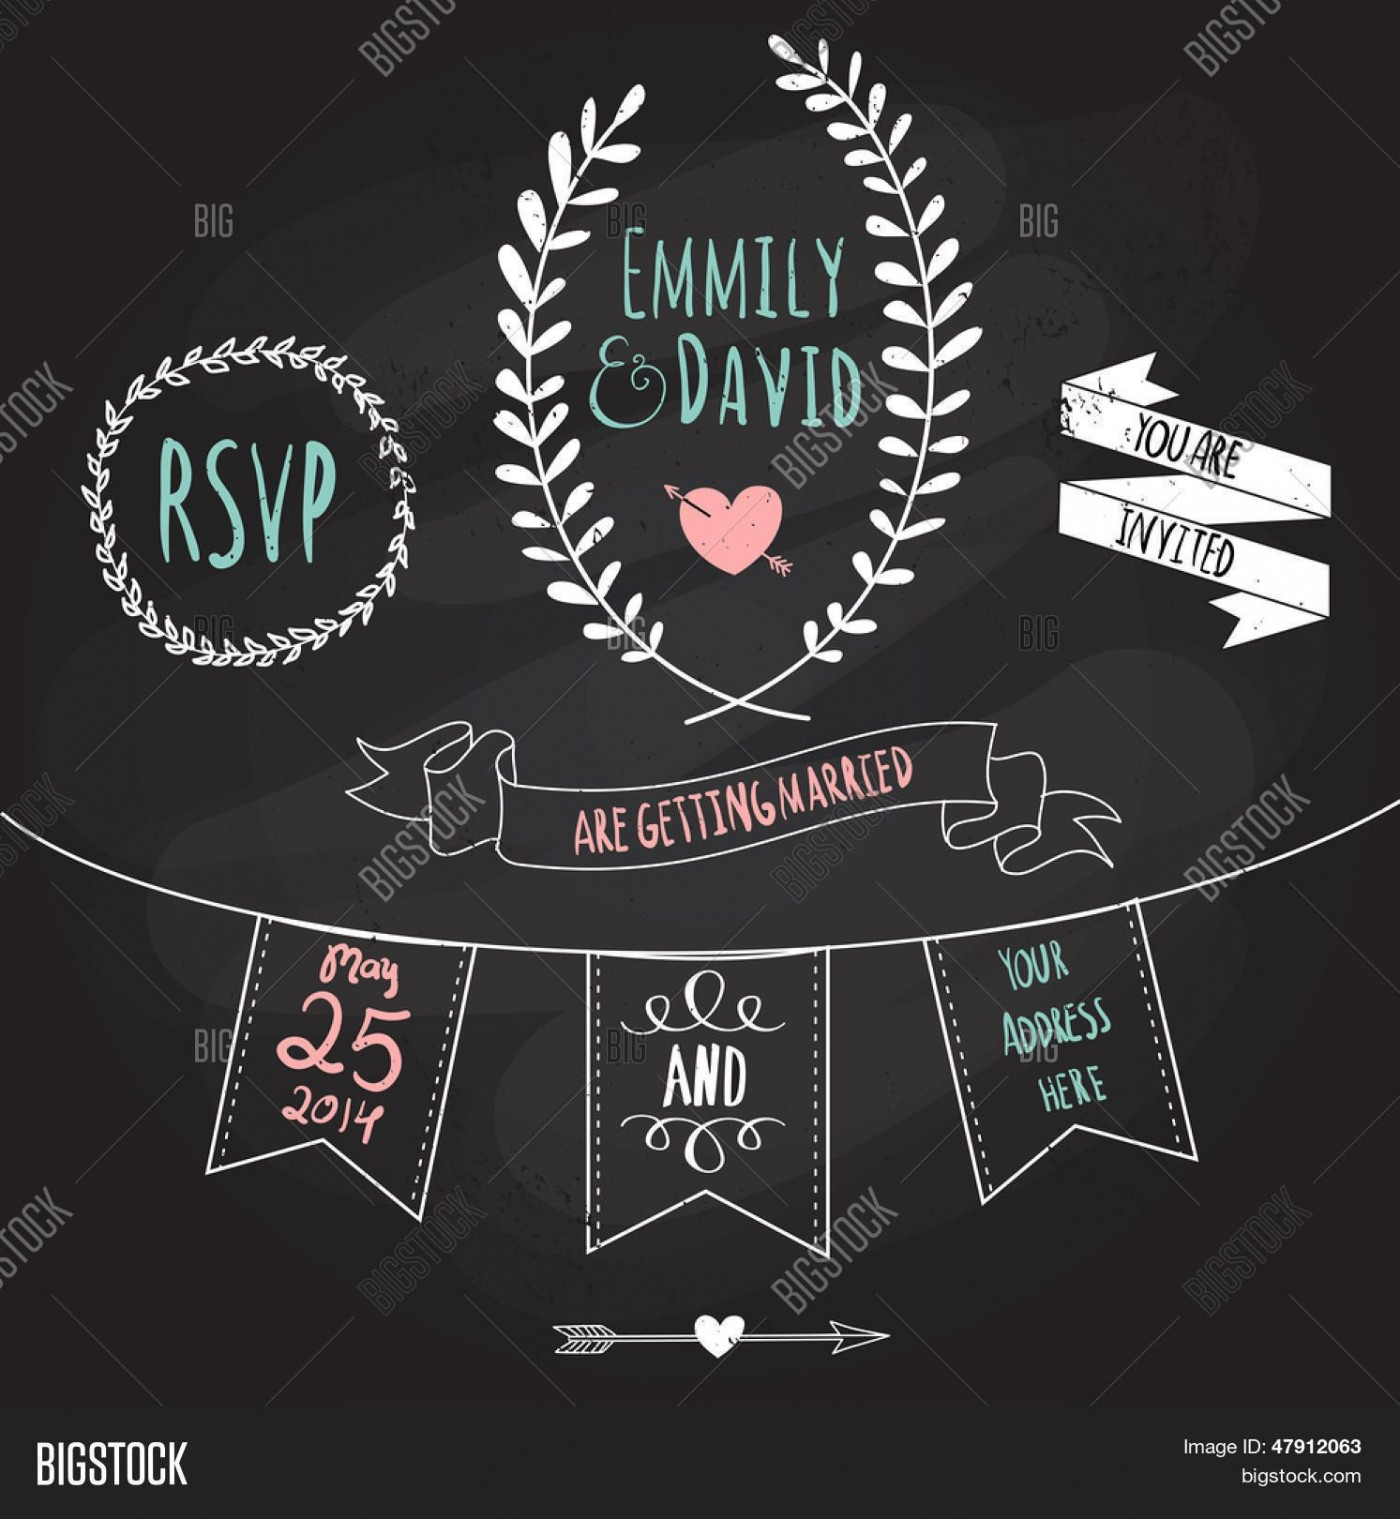 003 Simple Chalkboard Invitation Template Free Sample  Download Birthday1400